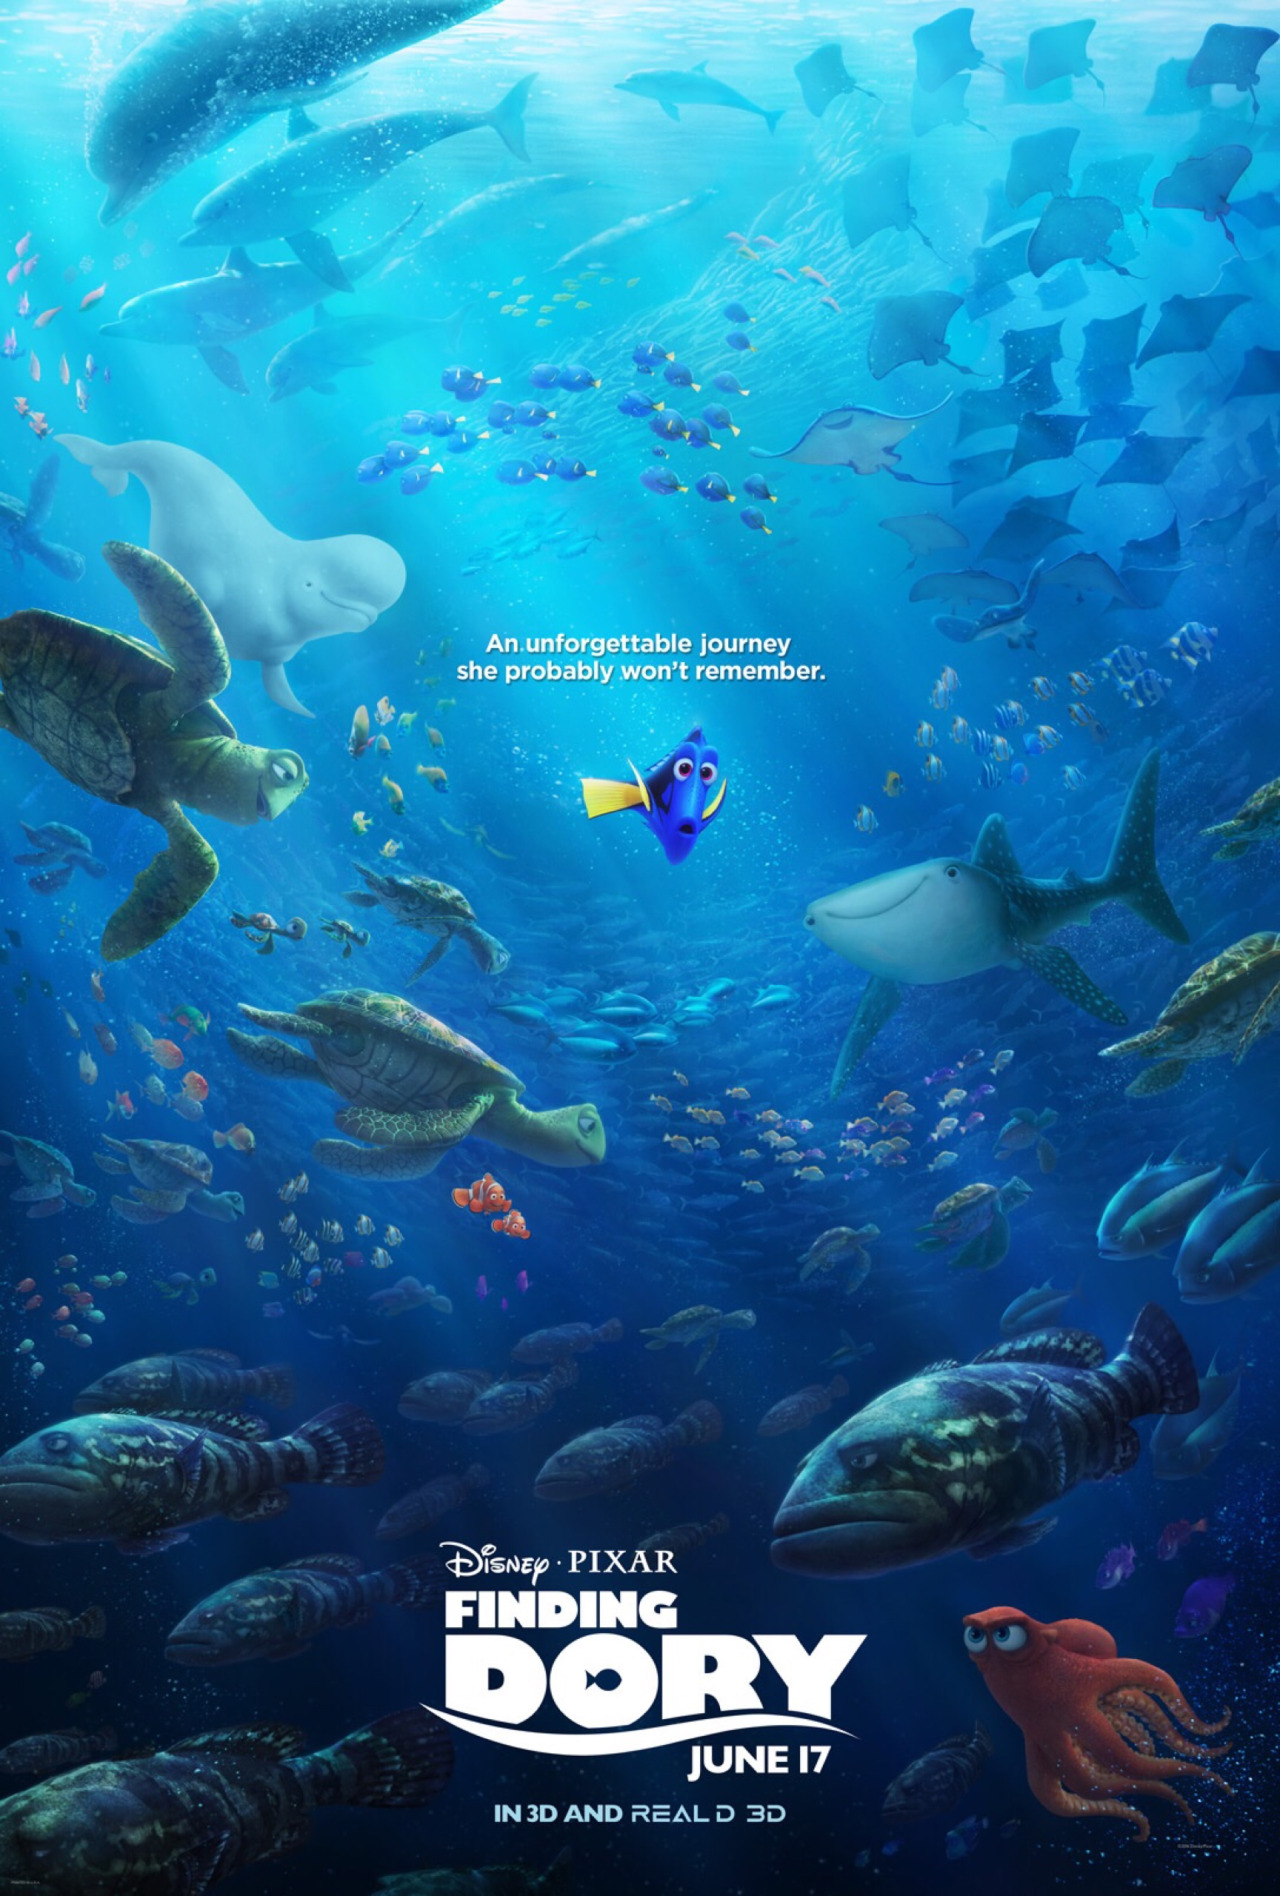 Finding dory poster finding nemo know your meme anunforgettable journey she probably wont remember die pixar finding june 17 thecheapjerseys Gallery